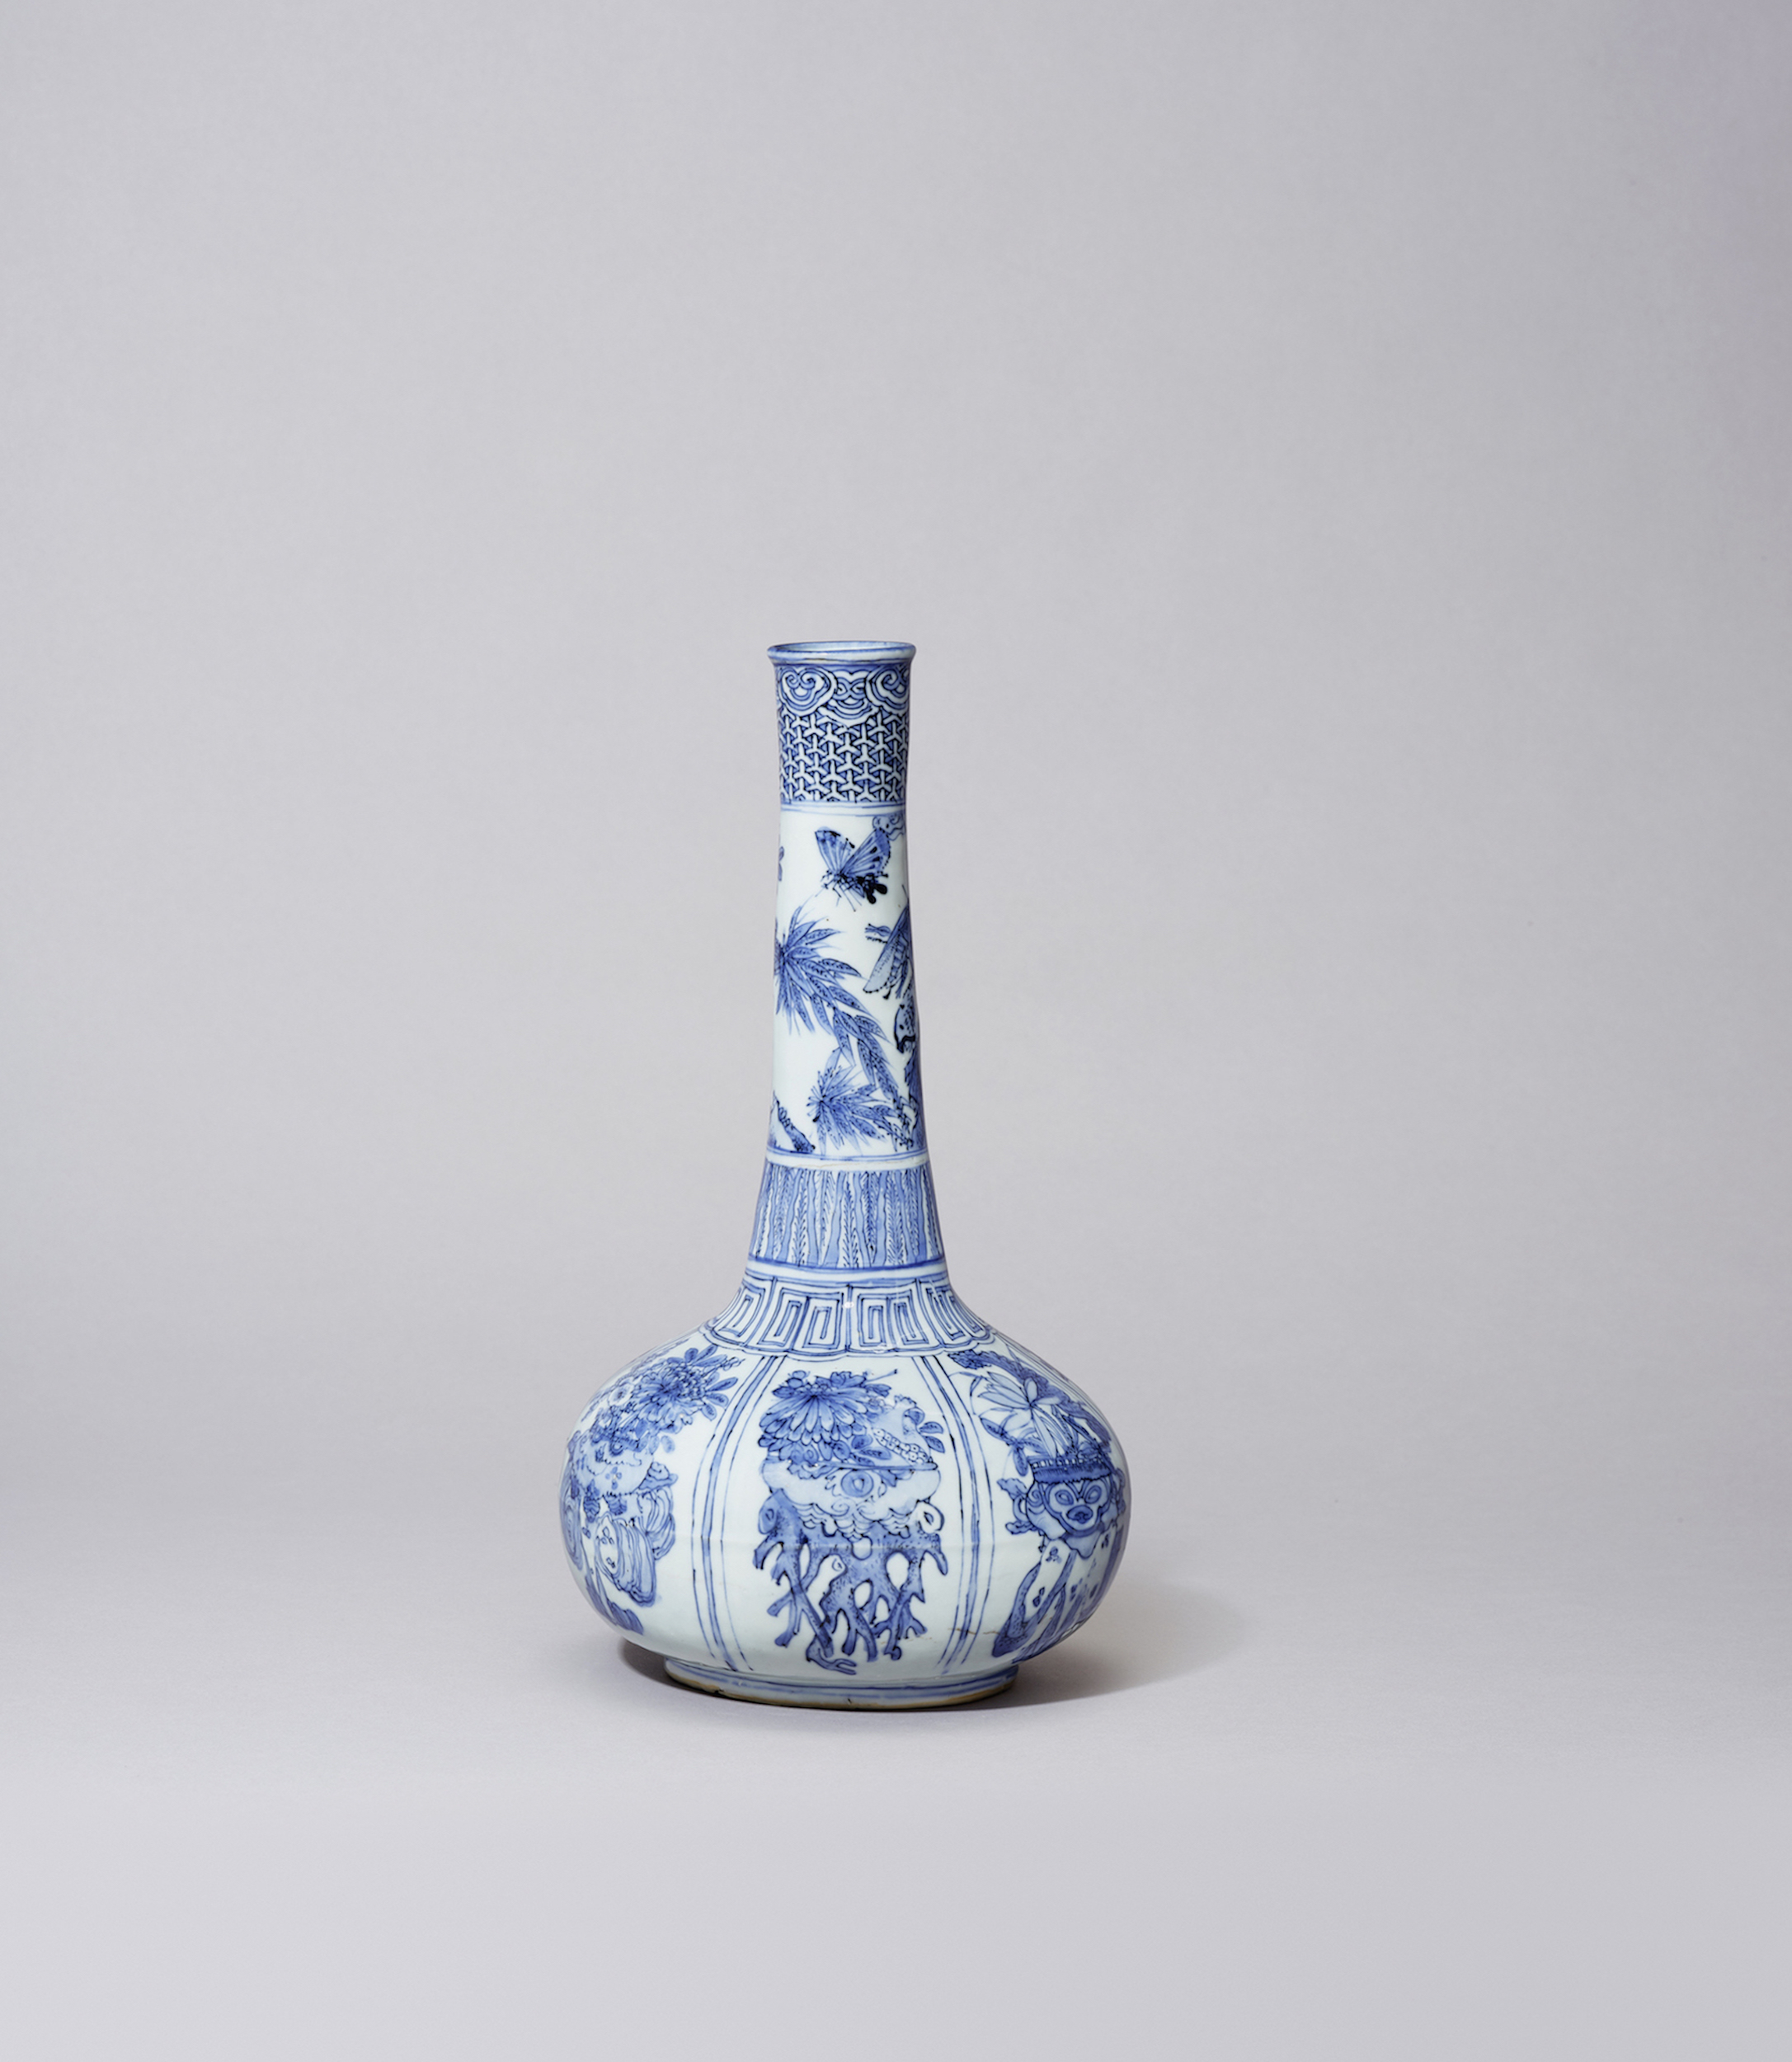 MING DYNASTY (1368-1644), WANLI PERIOD (1572-1620) 